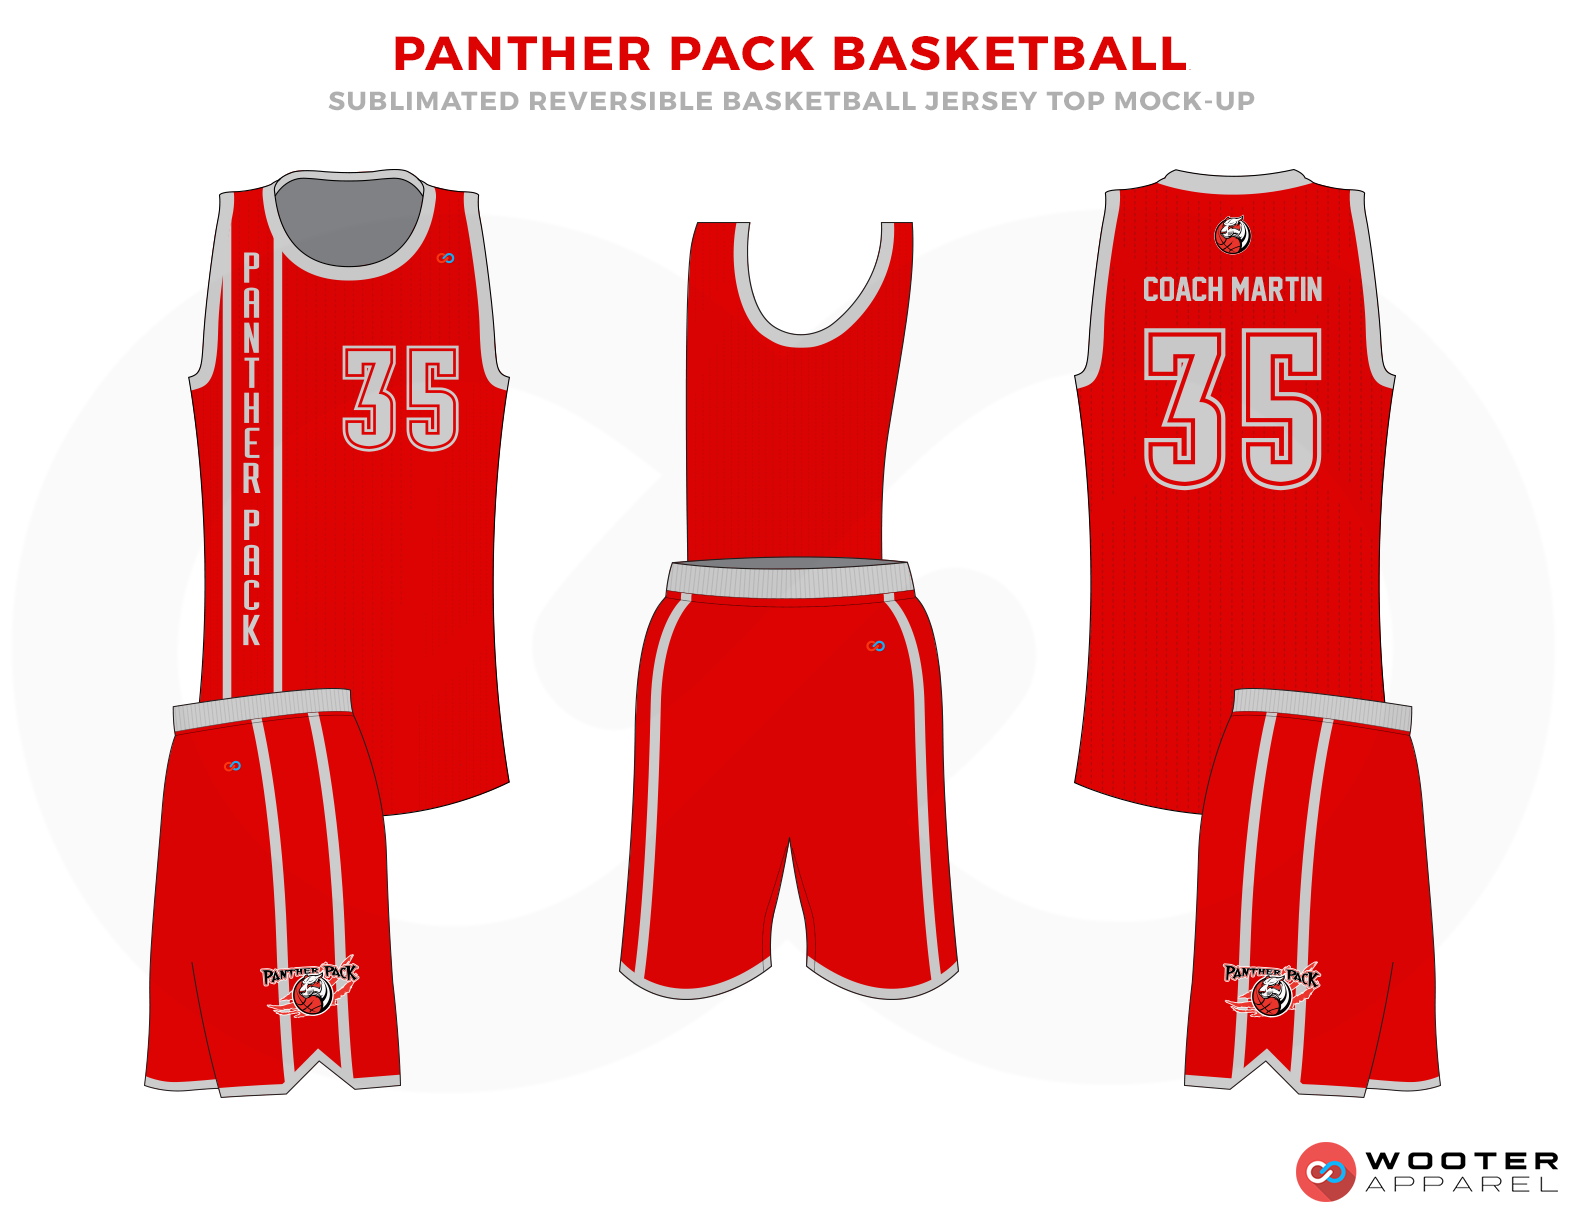 PANTHER PACK BASKETBALL Red and Grey Basketball Uniforms, Jersey and Shorts